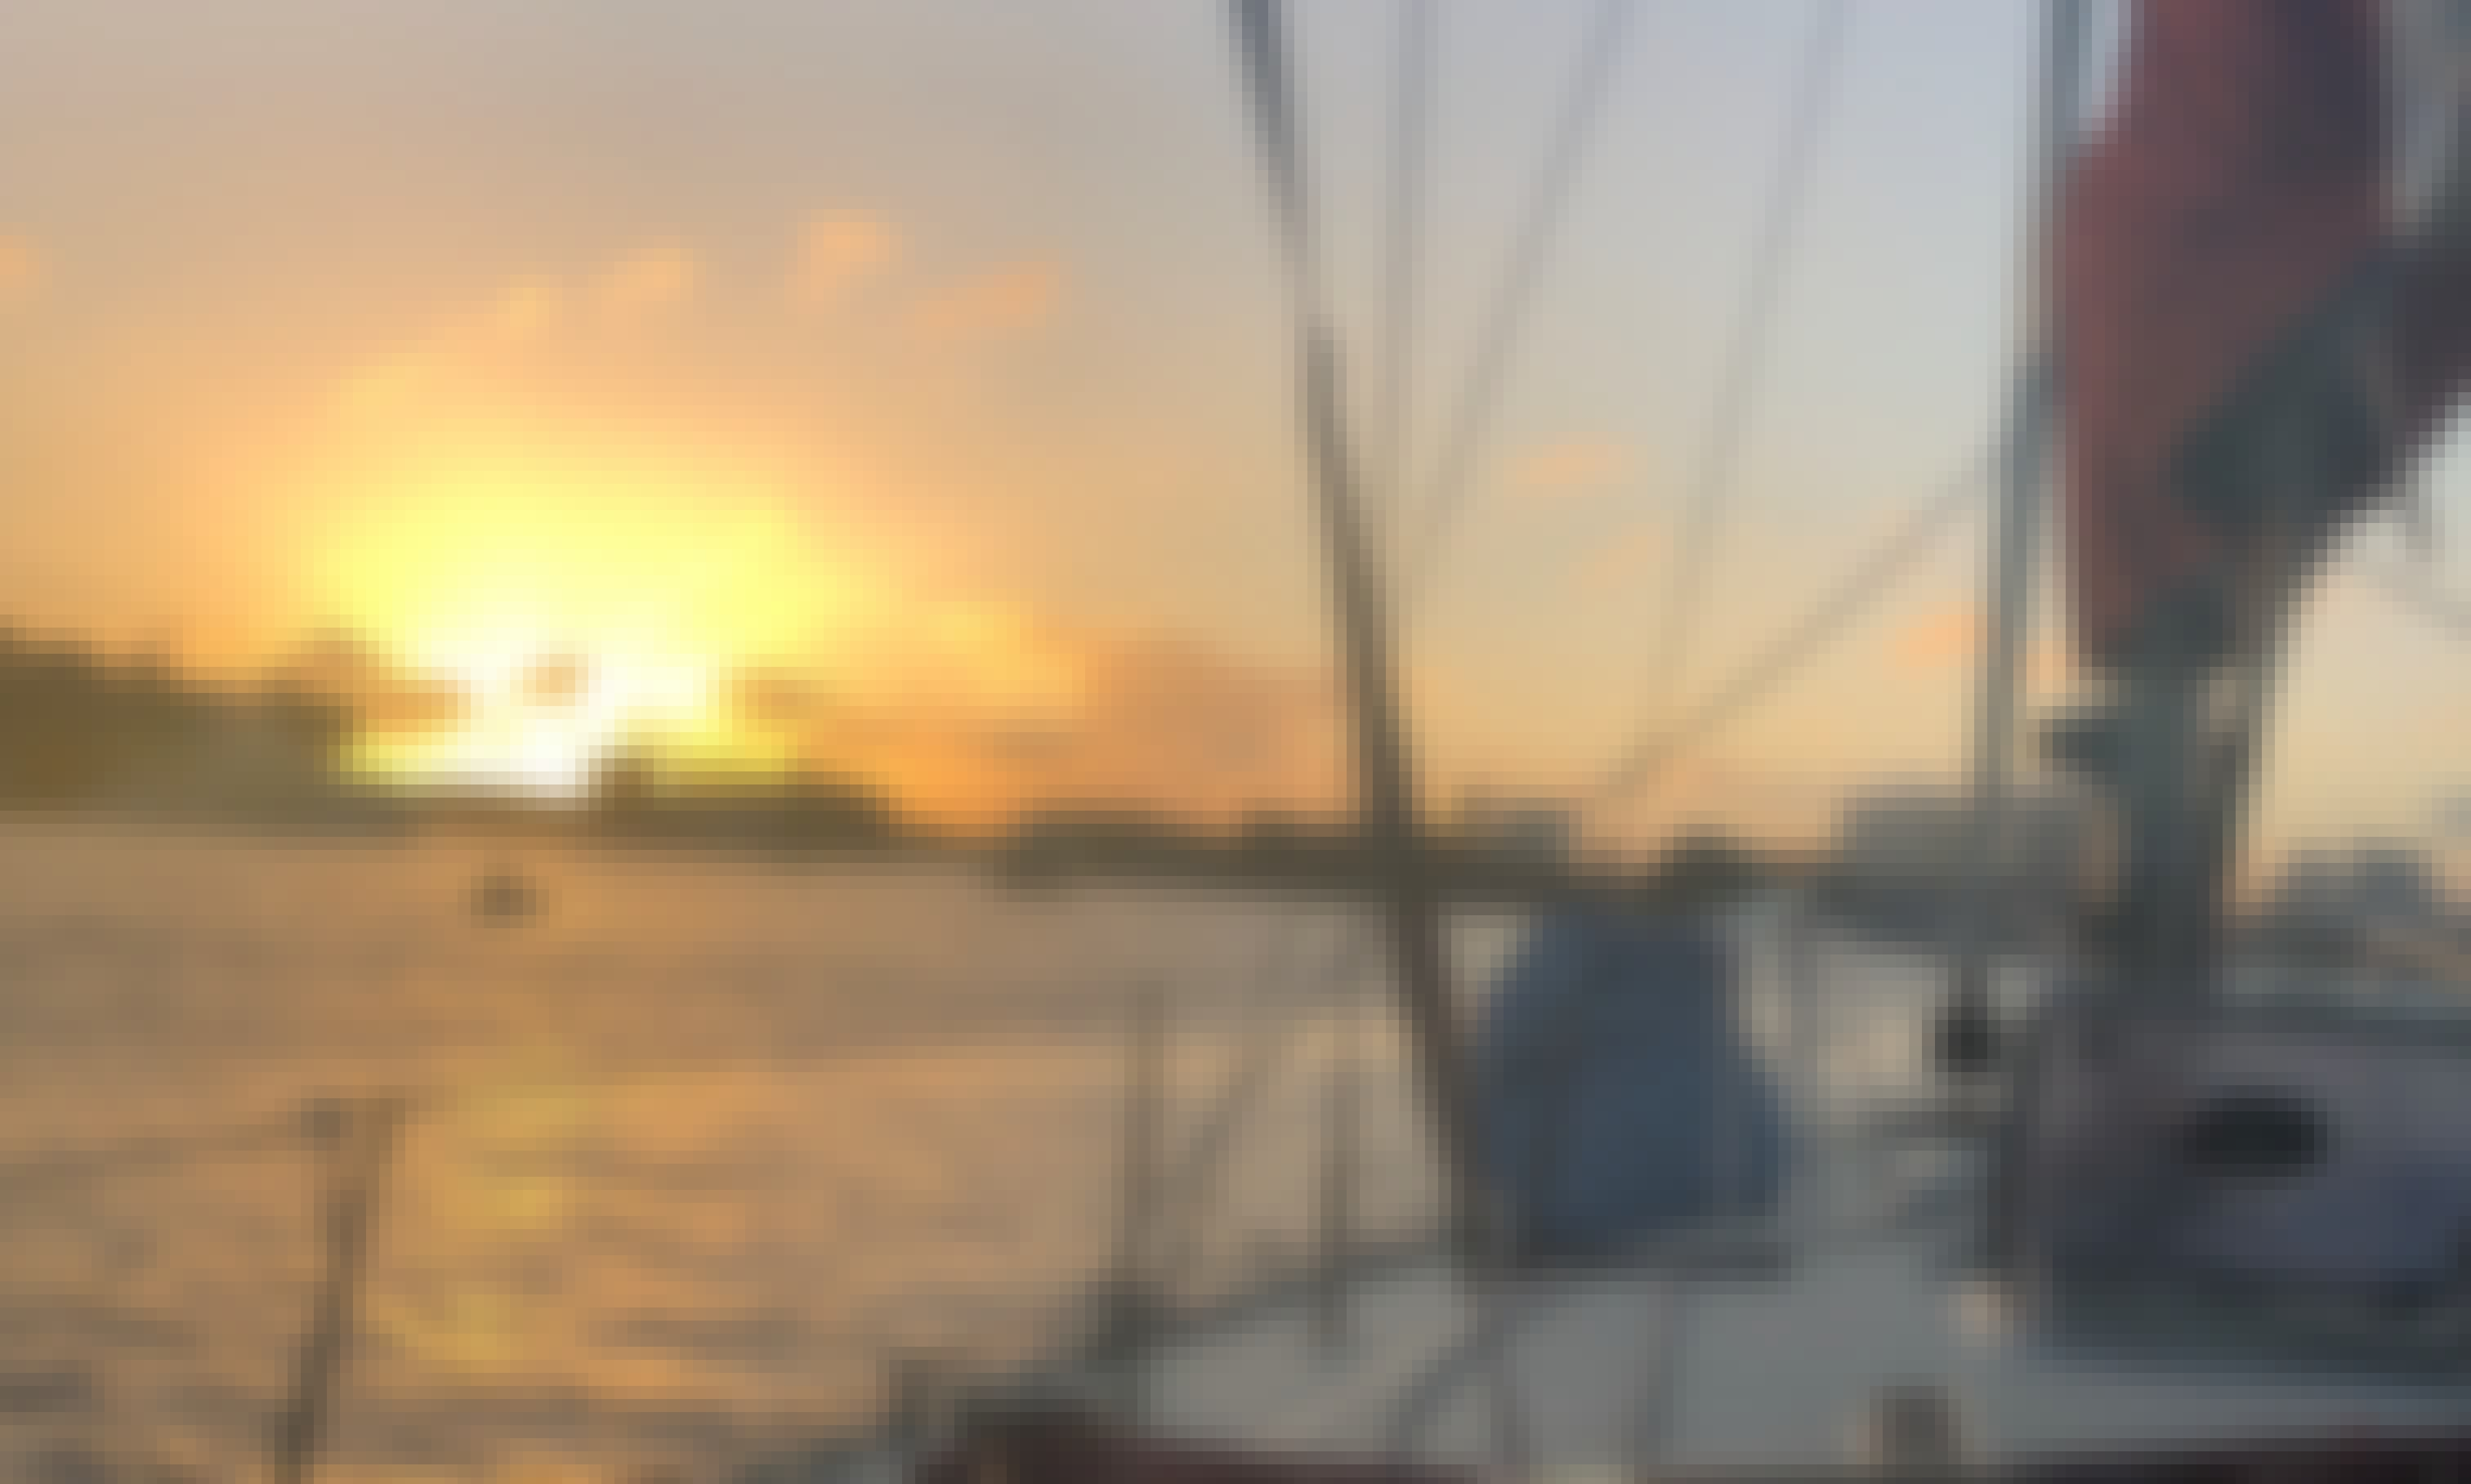 Sunset River Cruise for up to 6 people onboard 40' Jeanneau Sailboat!